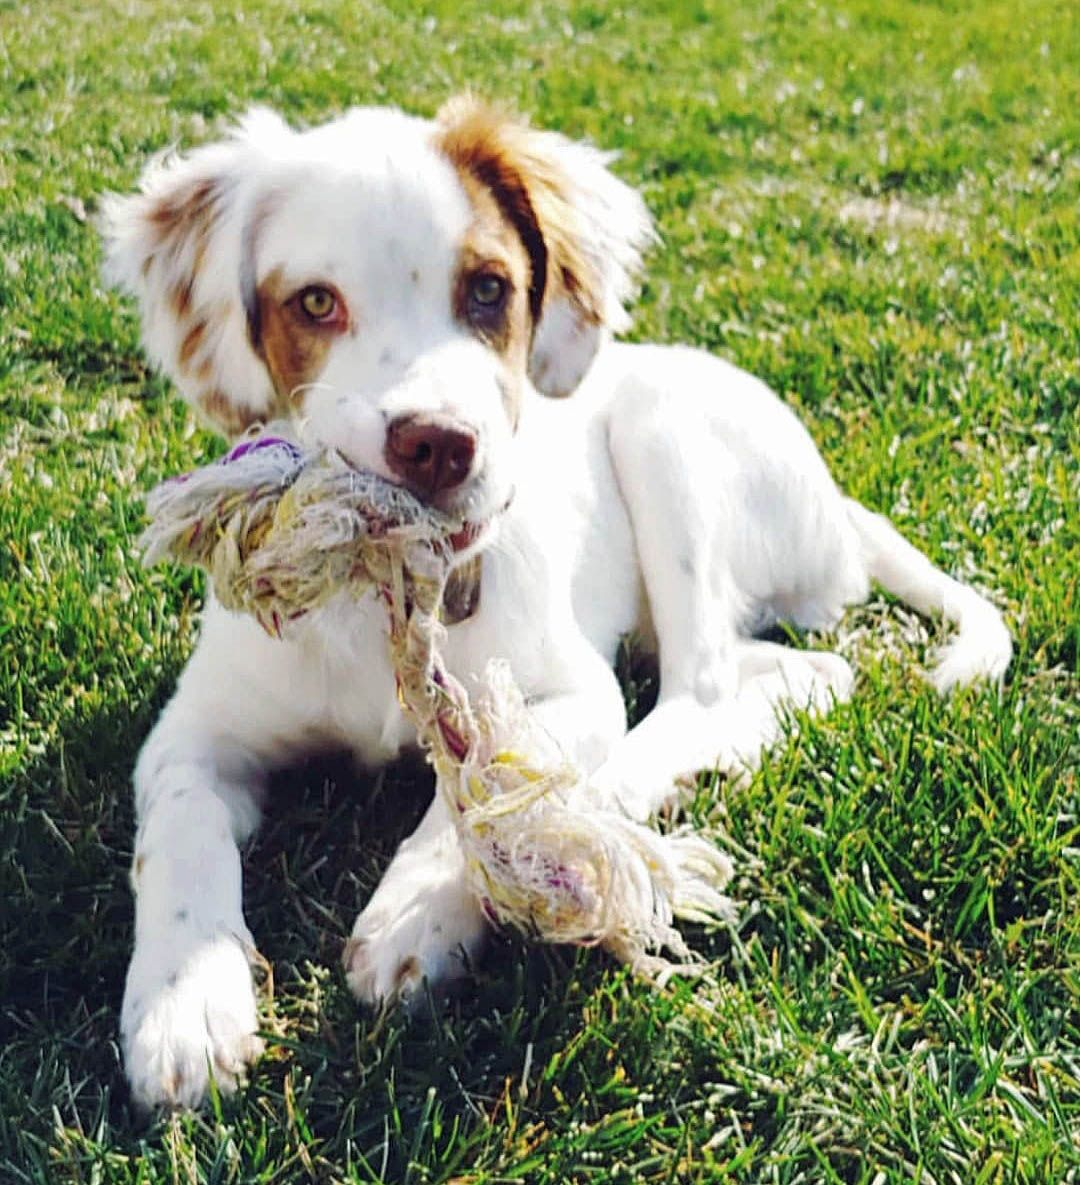 Nikko A Sweet Loving Smart 5 Month Old English Setter Mix Male Puppy Available For Adoption From A Setter Puppies English Setter Puppies Dog Breeds Little